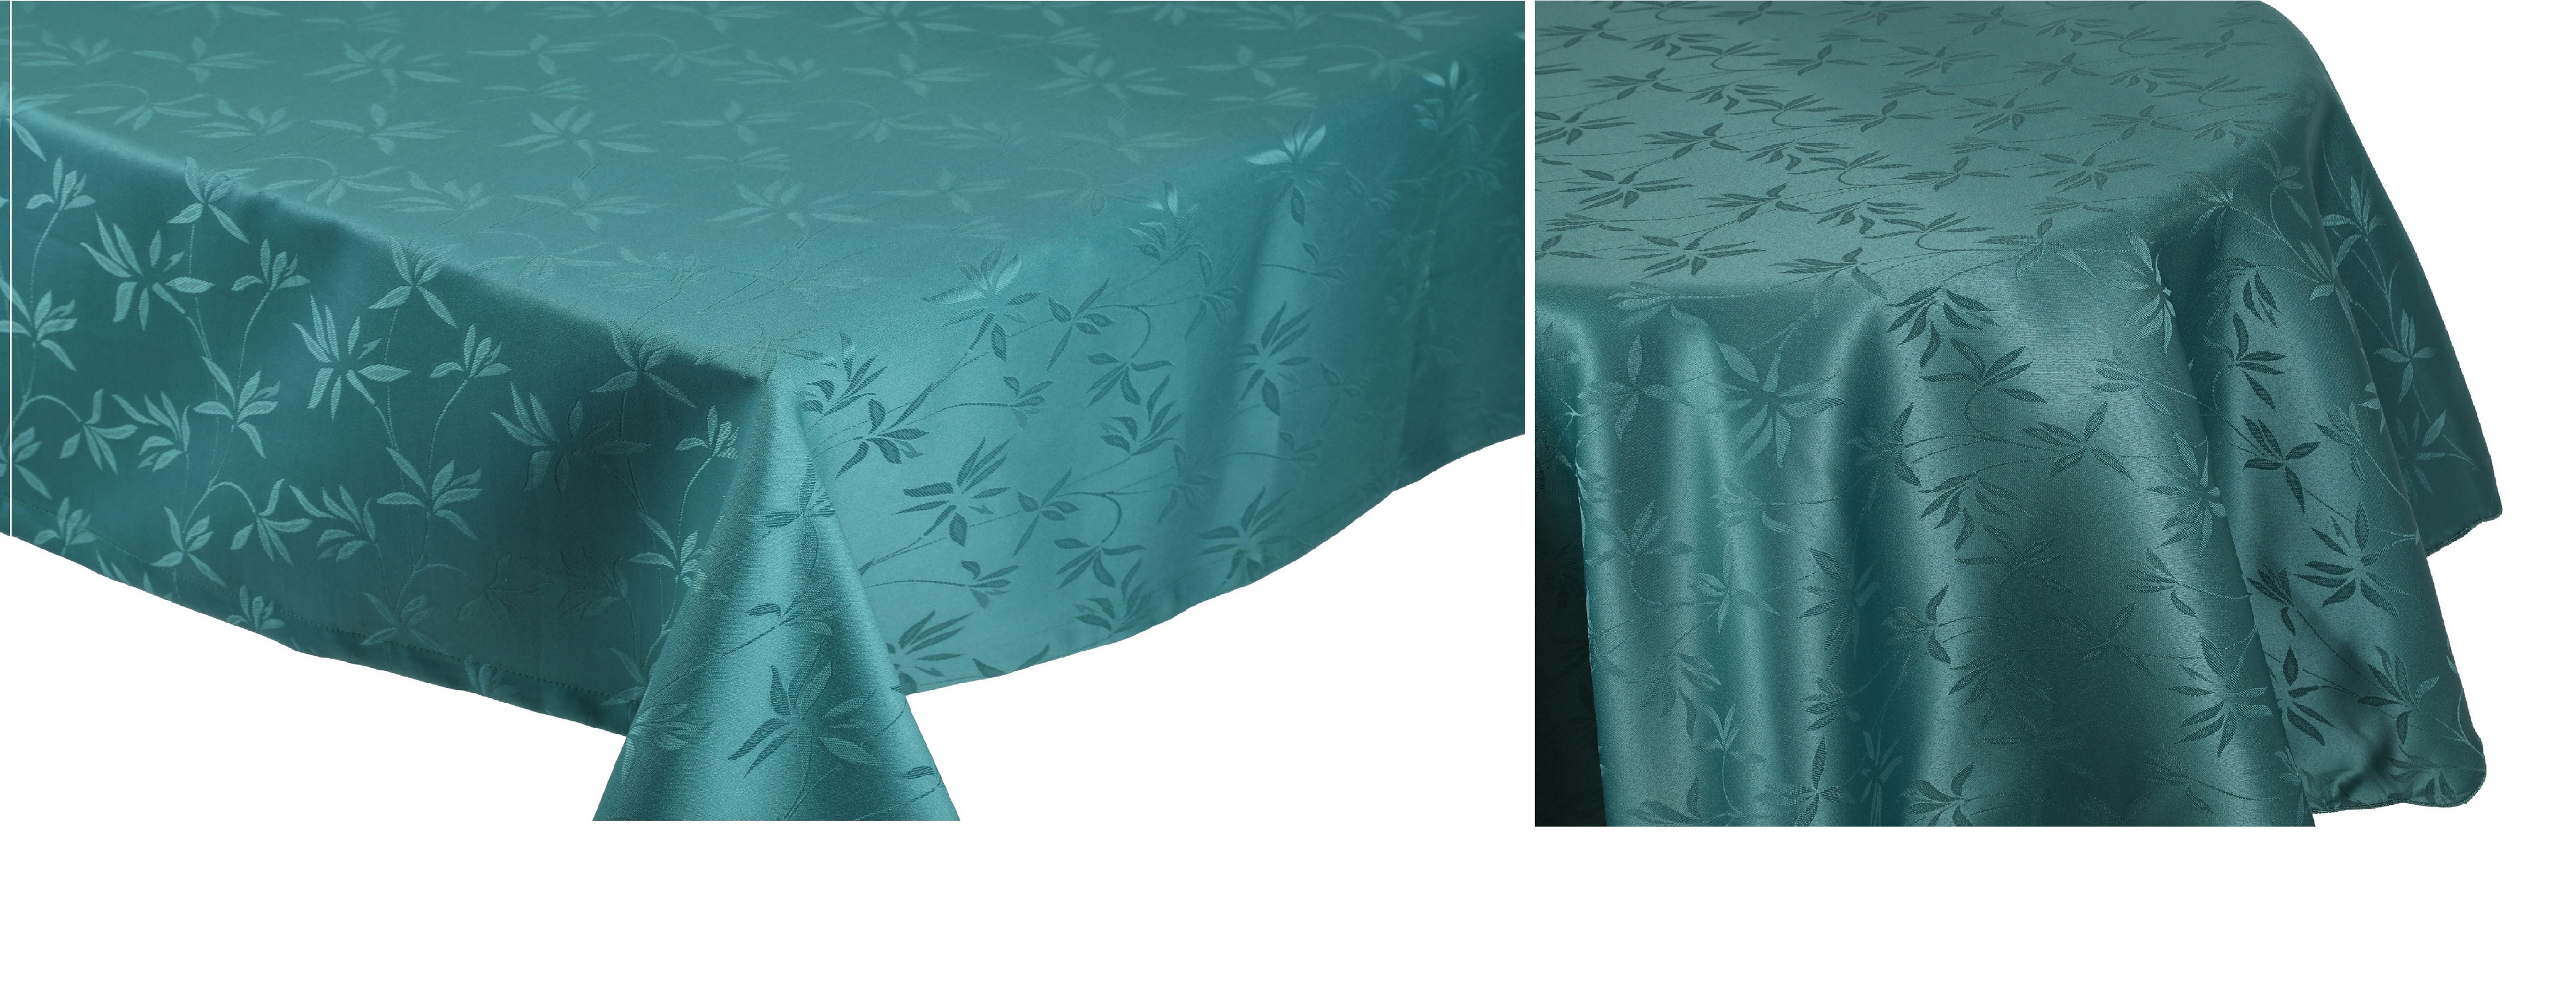 Nappe De Table Ovale Betz Nappe Jacquard Linge De Table Dessin 14 Couleur Vert Ãmeraude